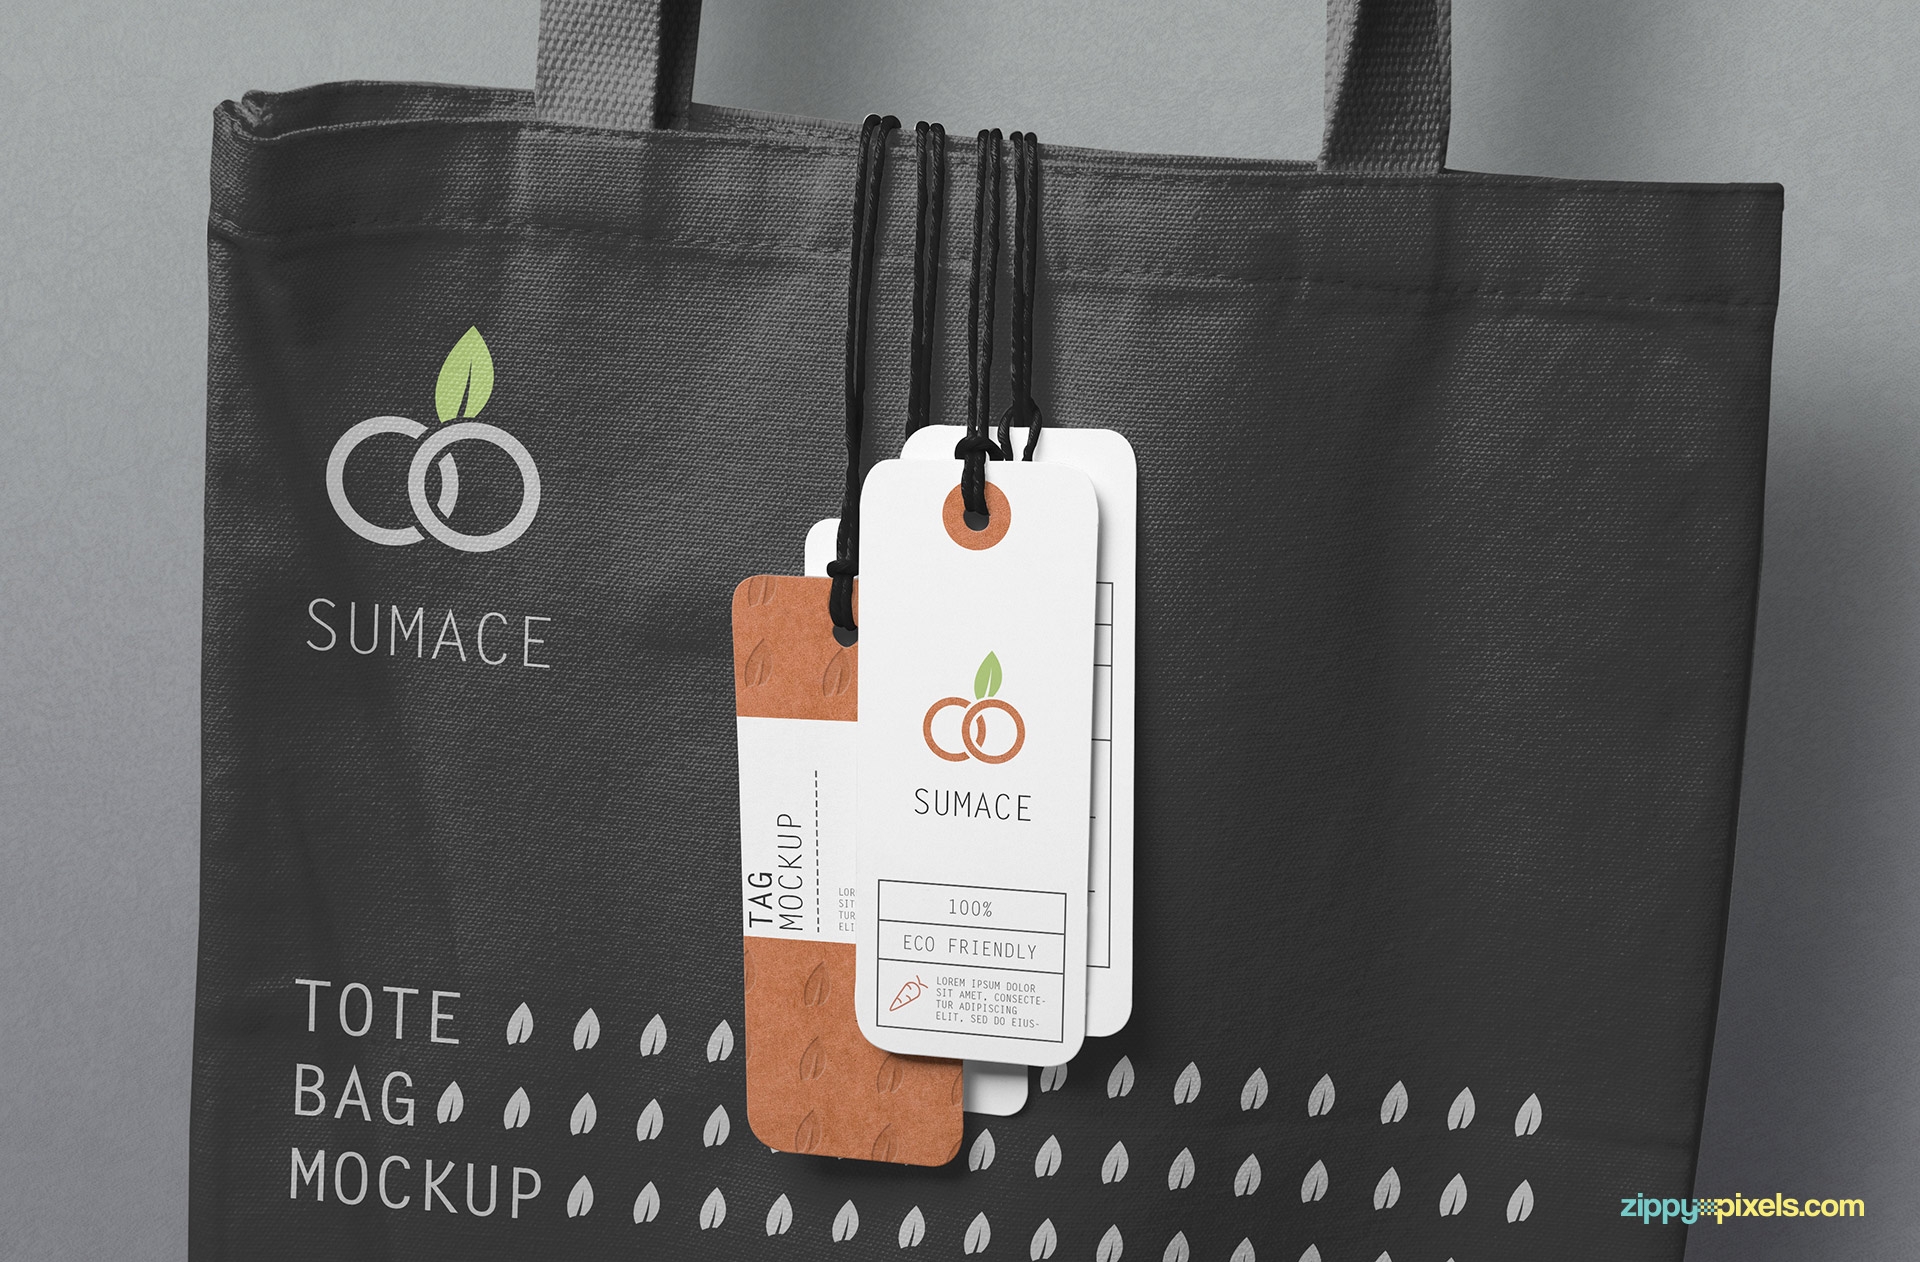 4 tags hanging on a customizable tote bag.